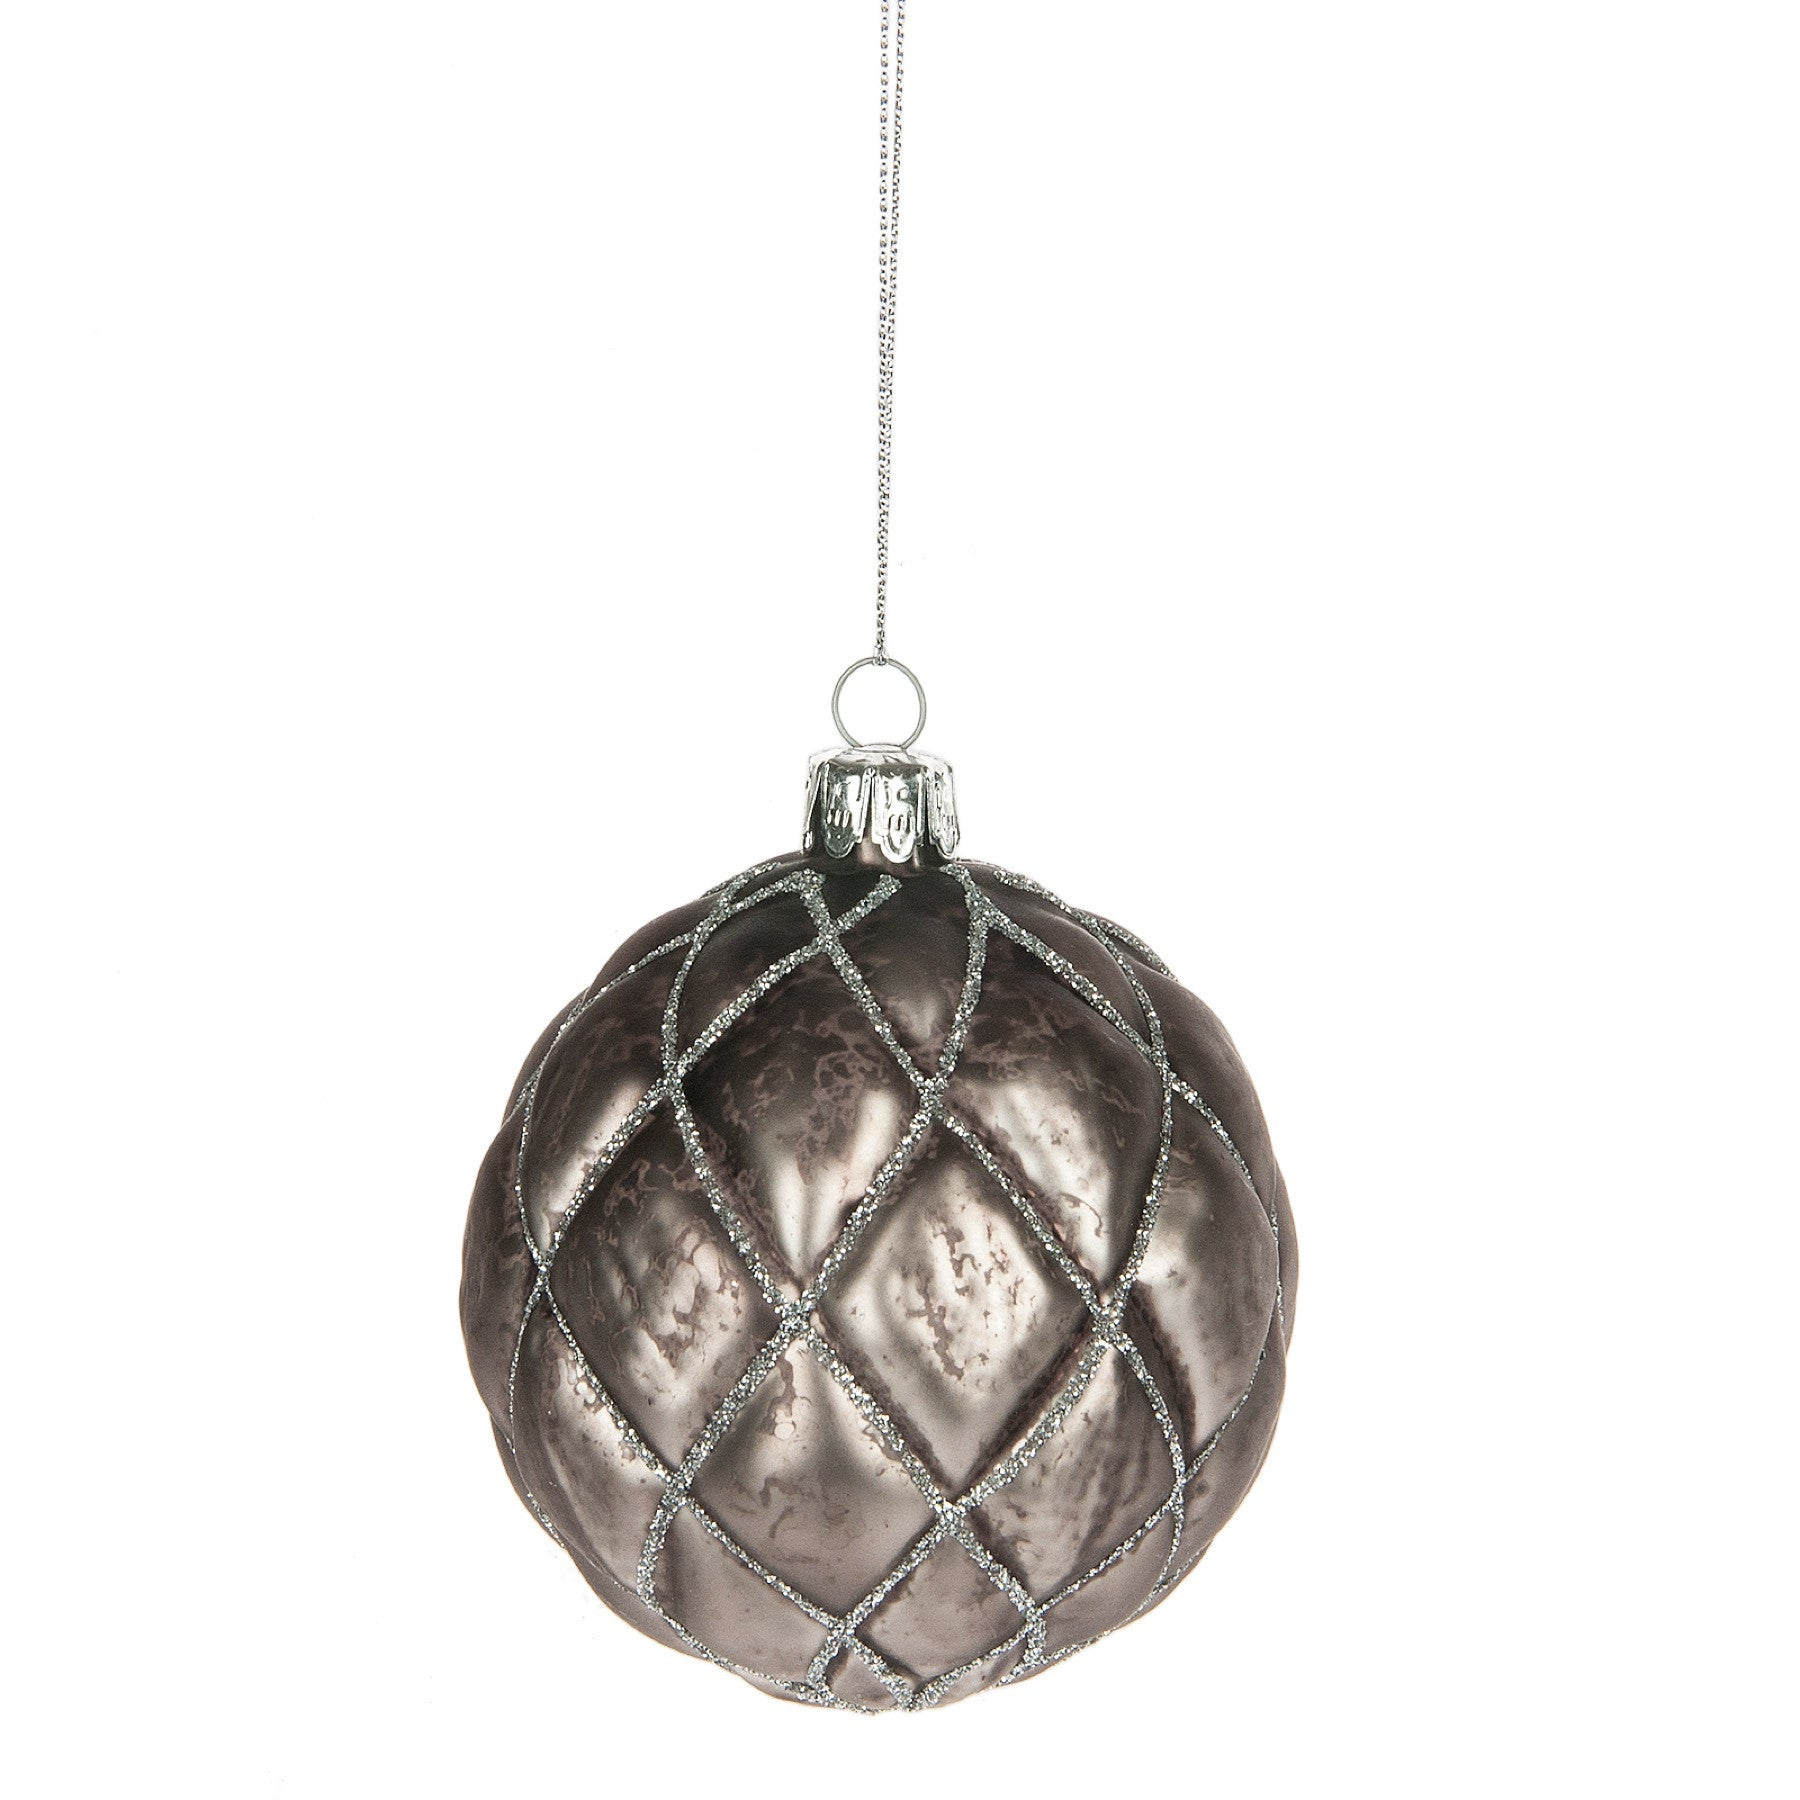 Charcoal Grey Faceted Ball Ornament, MW-Midwest / CBK, Putti Fine Furnishings